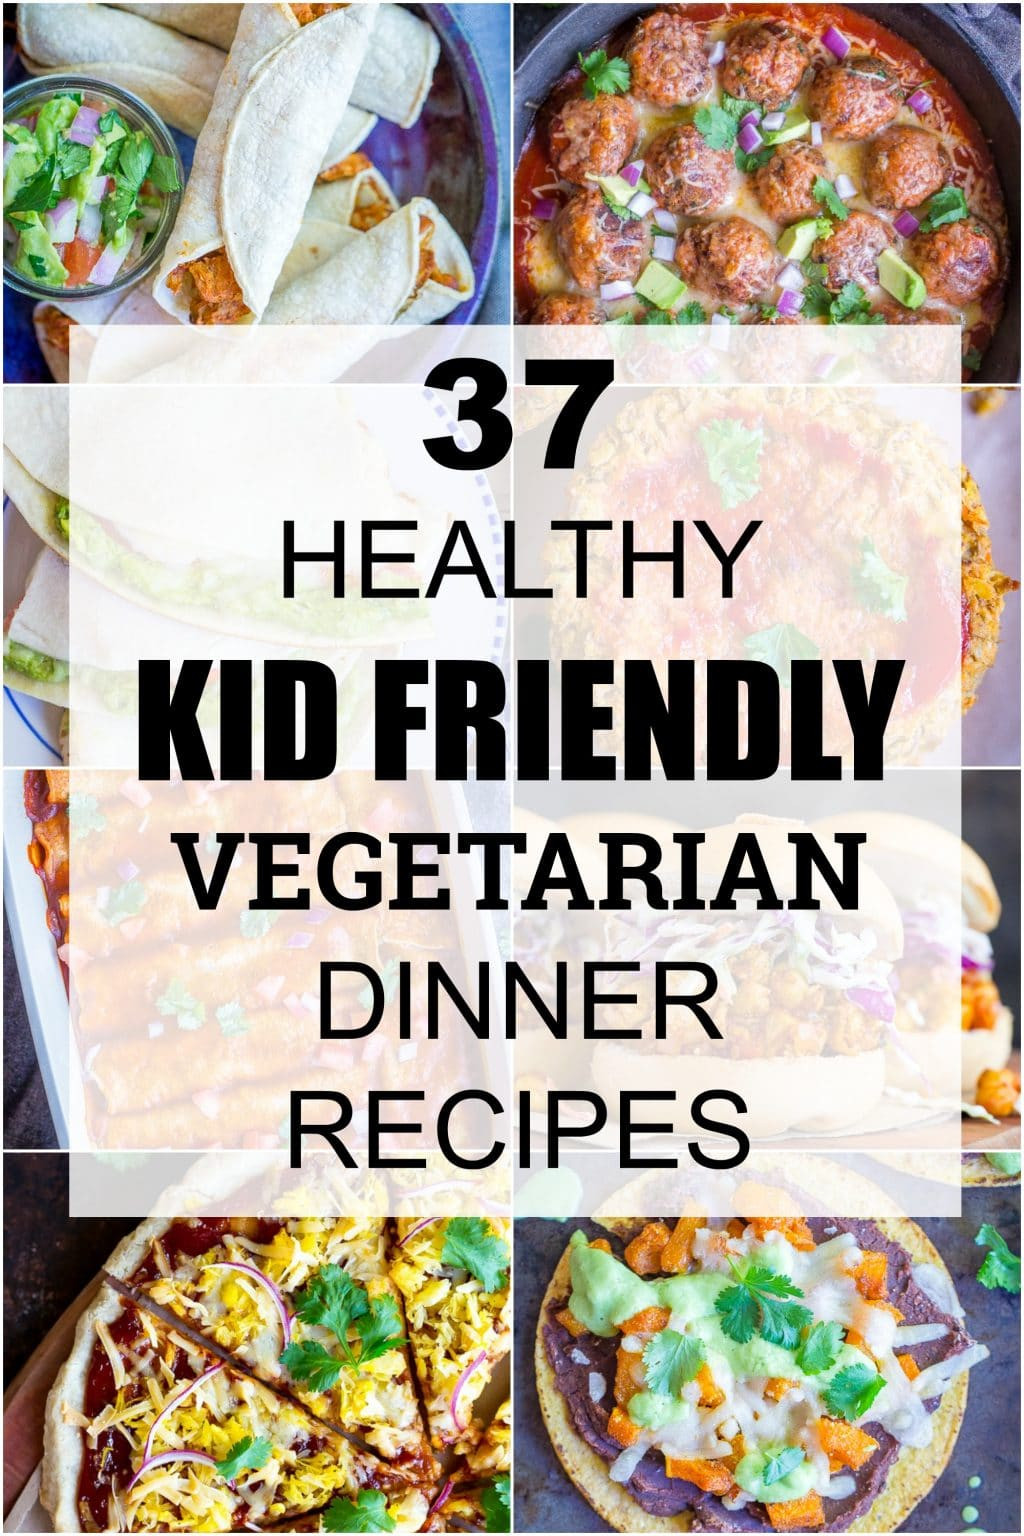 Healthy Dinner Recipes For Kids  37 Healthy Kid Friendly Ve arian Dinner Recipes She